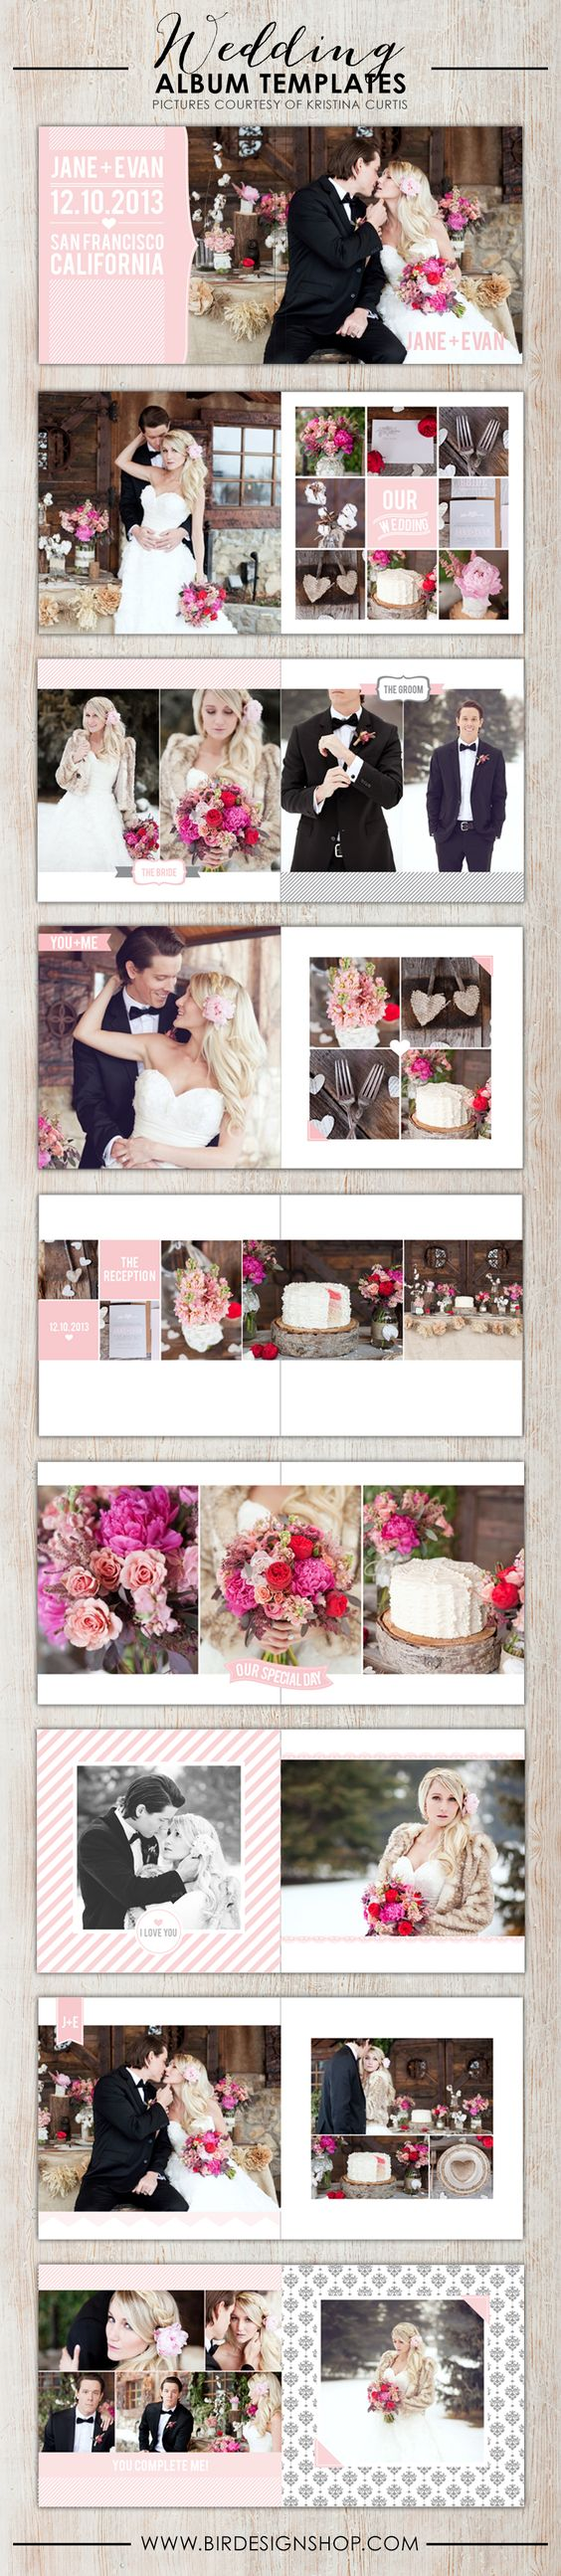 wedding photo album templates in photoshop - new wedding albums wedding design and classic